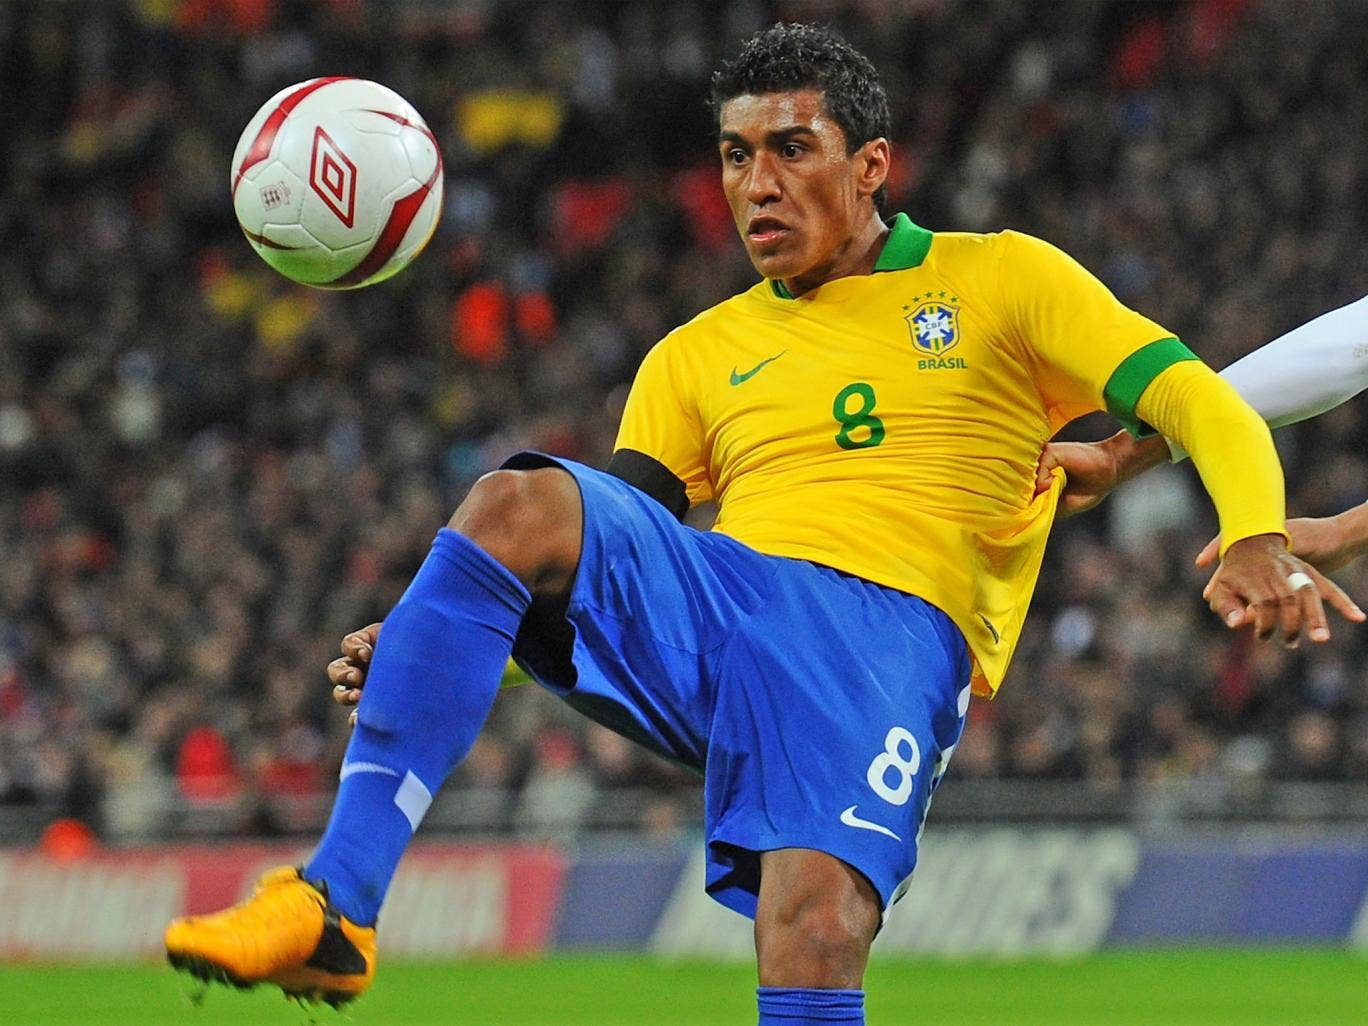 PAULINHO: Looked off the pace in midfield, not least when Rooney darted in front of him to set up Lampard's goal. 5